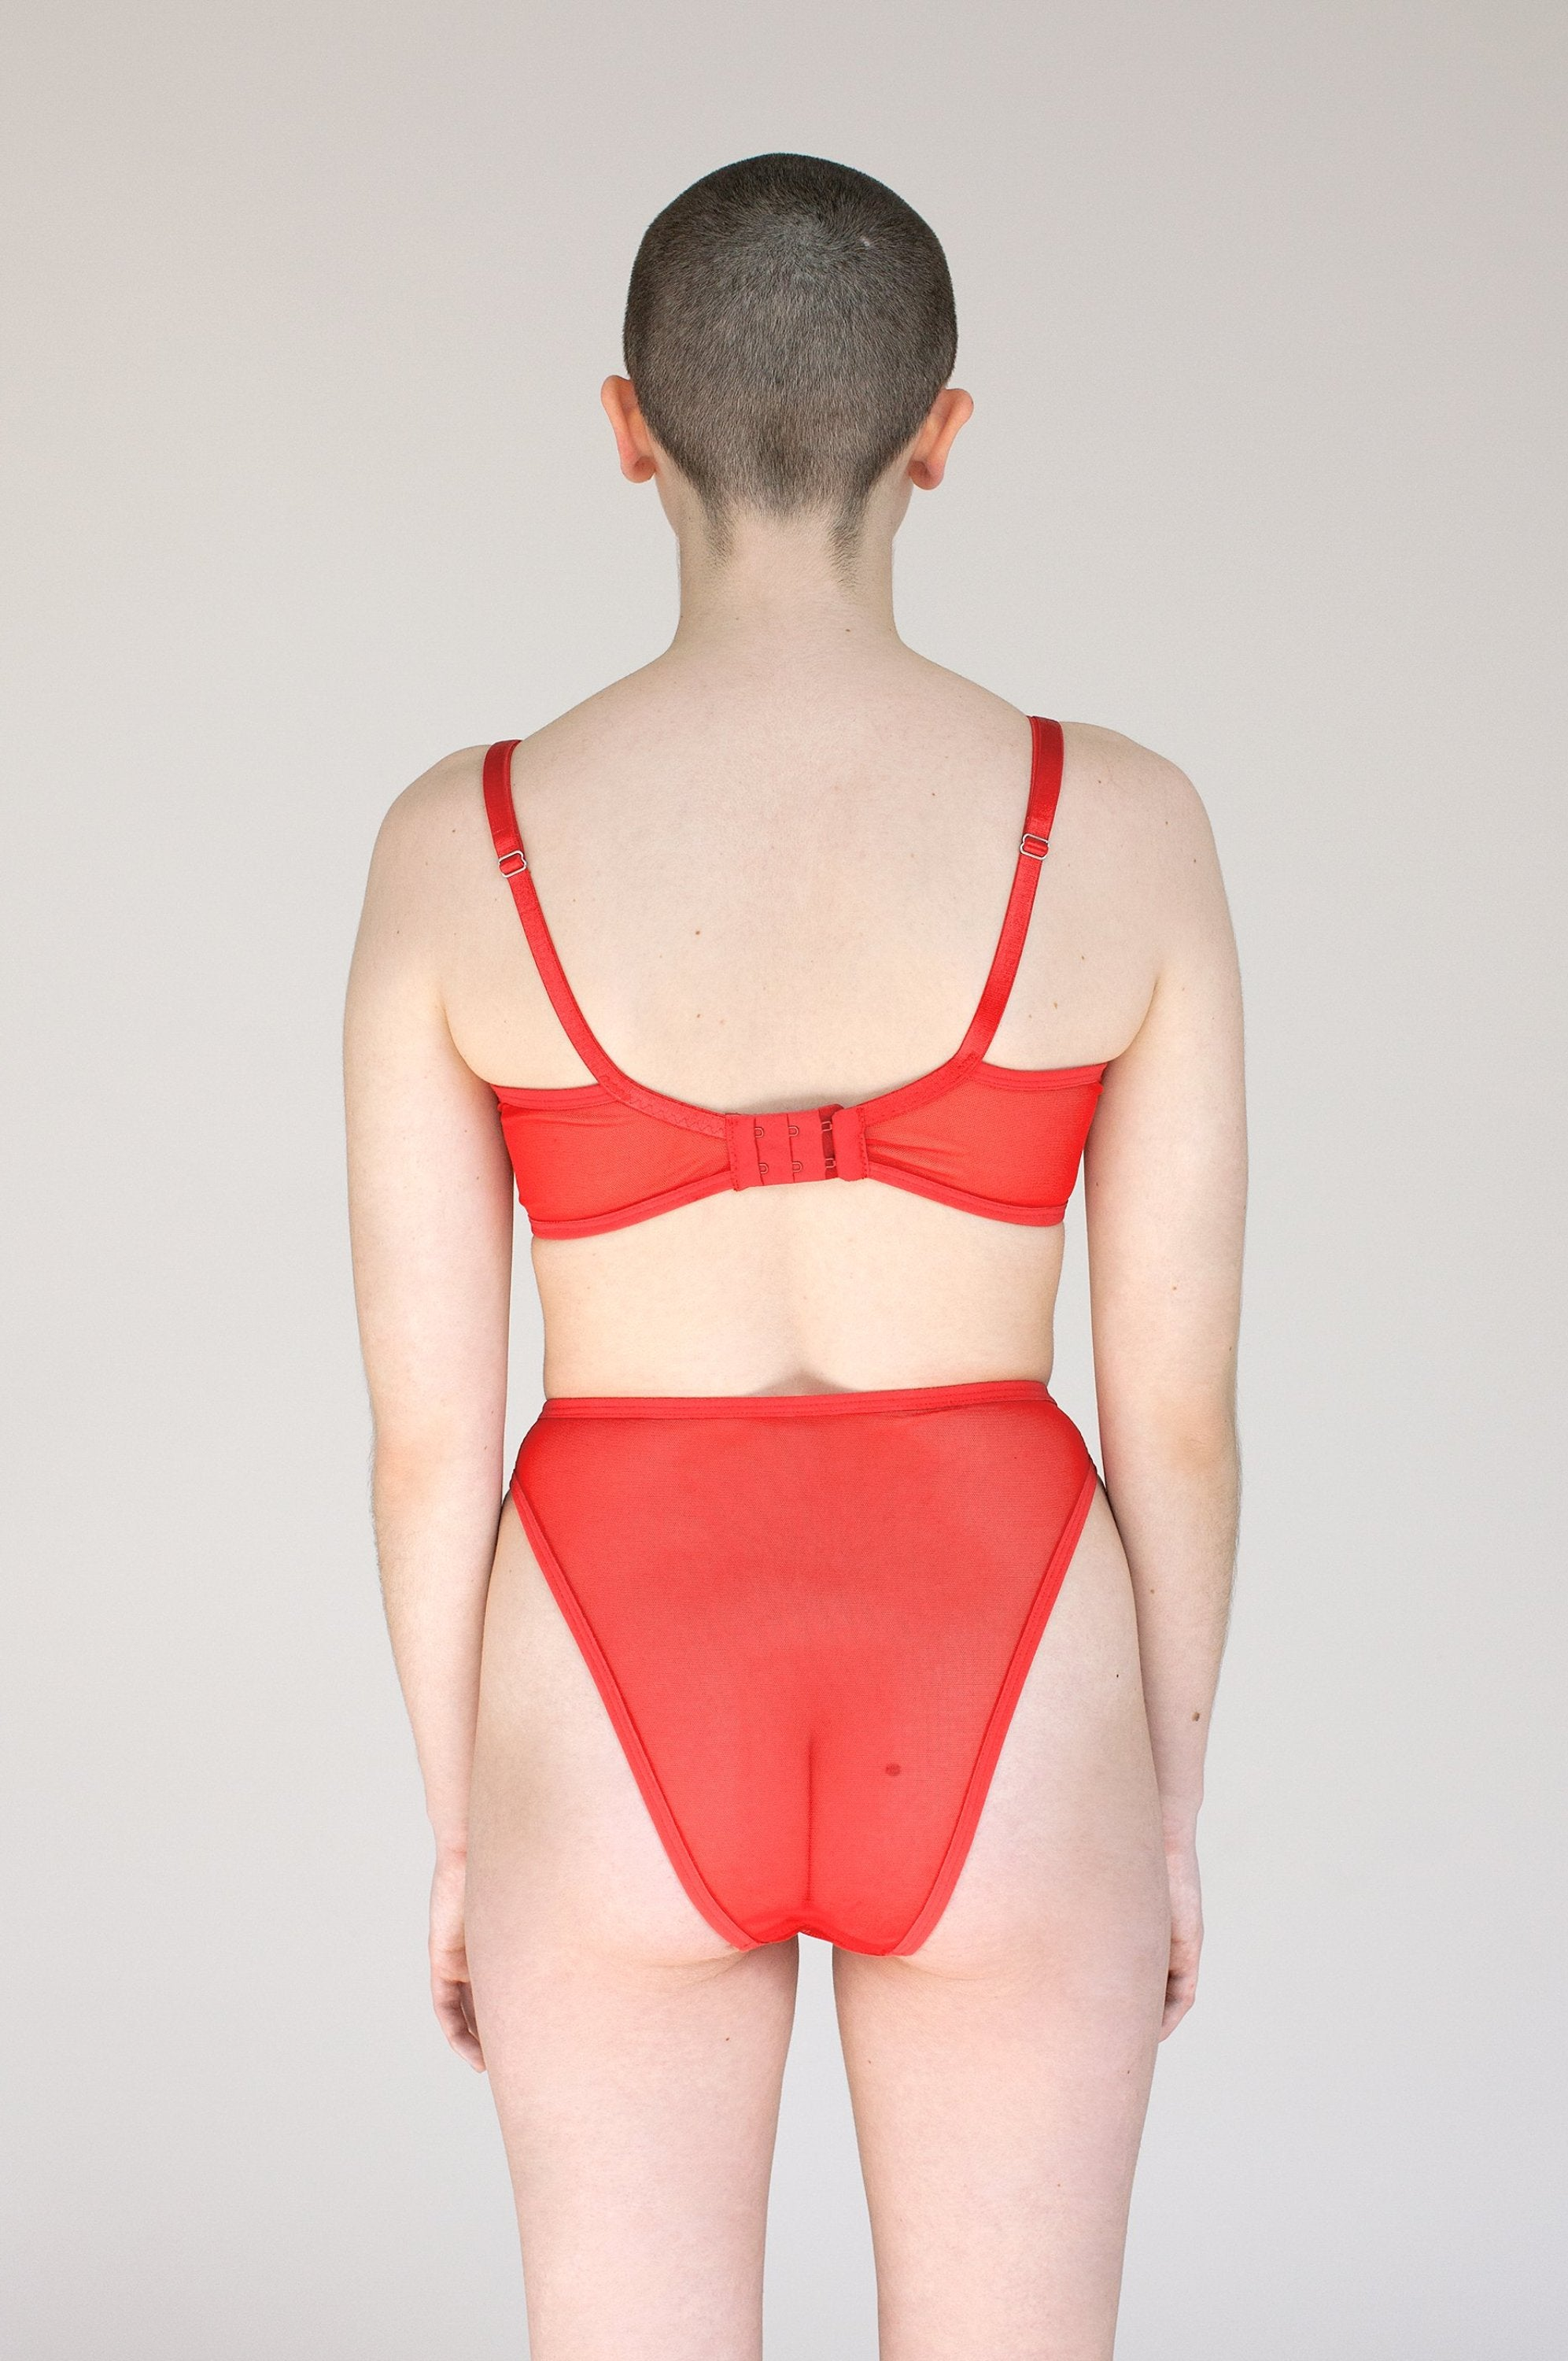 a14c189bc Lee Panties - High-Waisted French Cut Mesh Underwear in Red – bully boy